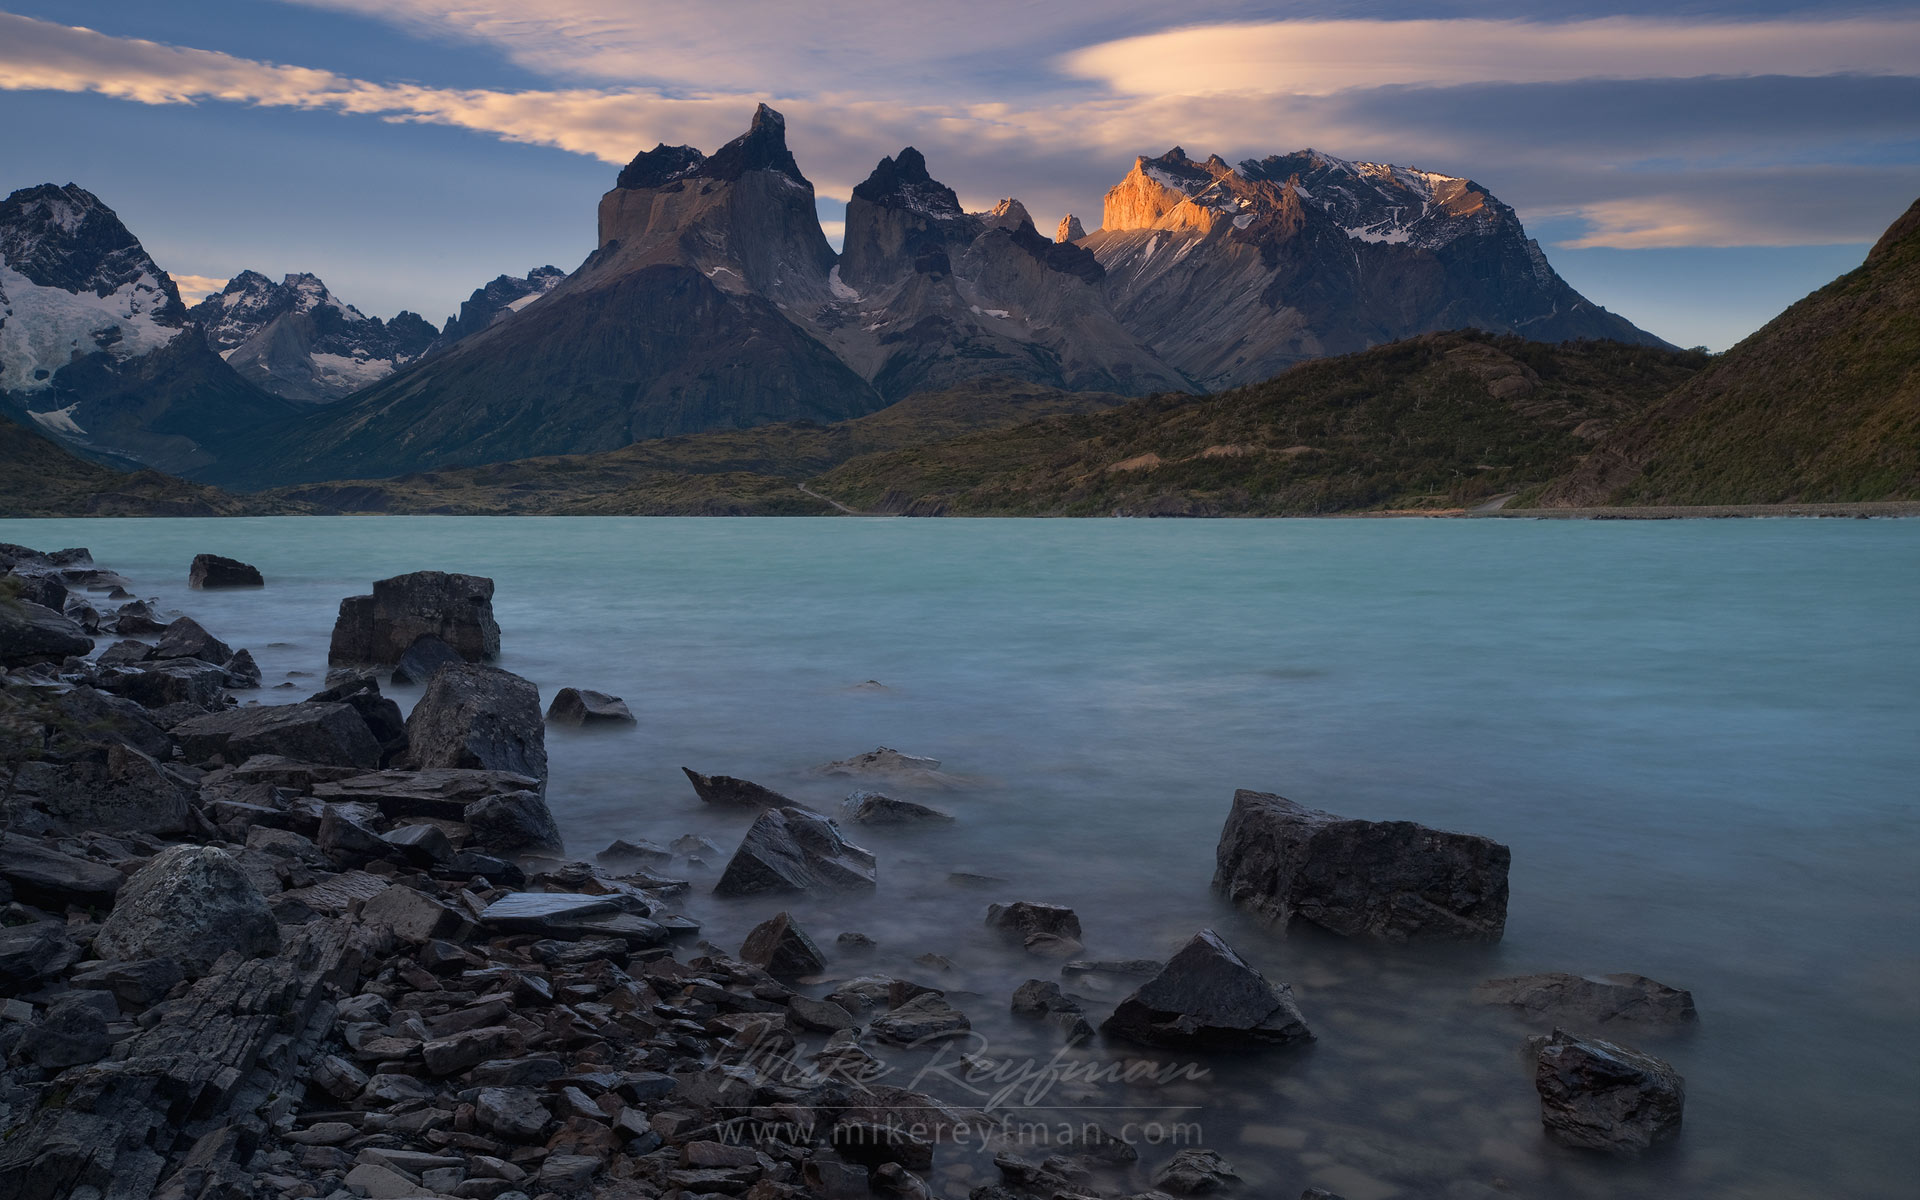 Last light on Cuernos del Paine. Torres del Paine National Park, Ultima Esperanza Province, Magallanes and Antartica Chilena Region XII, Patagonia, Chile. - Torres-Del-Paine-National-Park-Patagonia-Chile - Mike Reyfman Photography